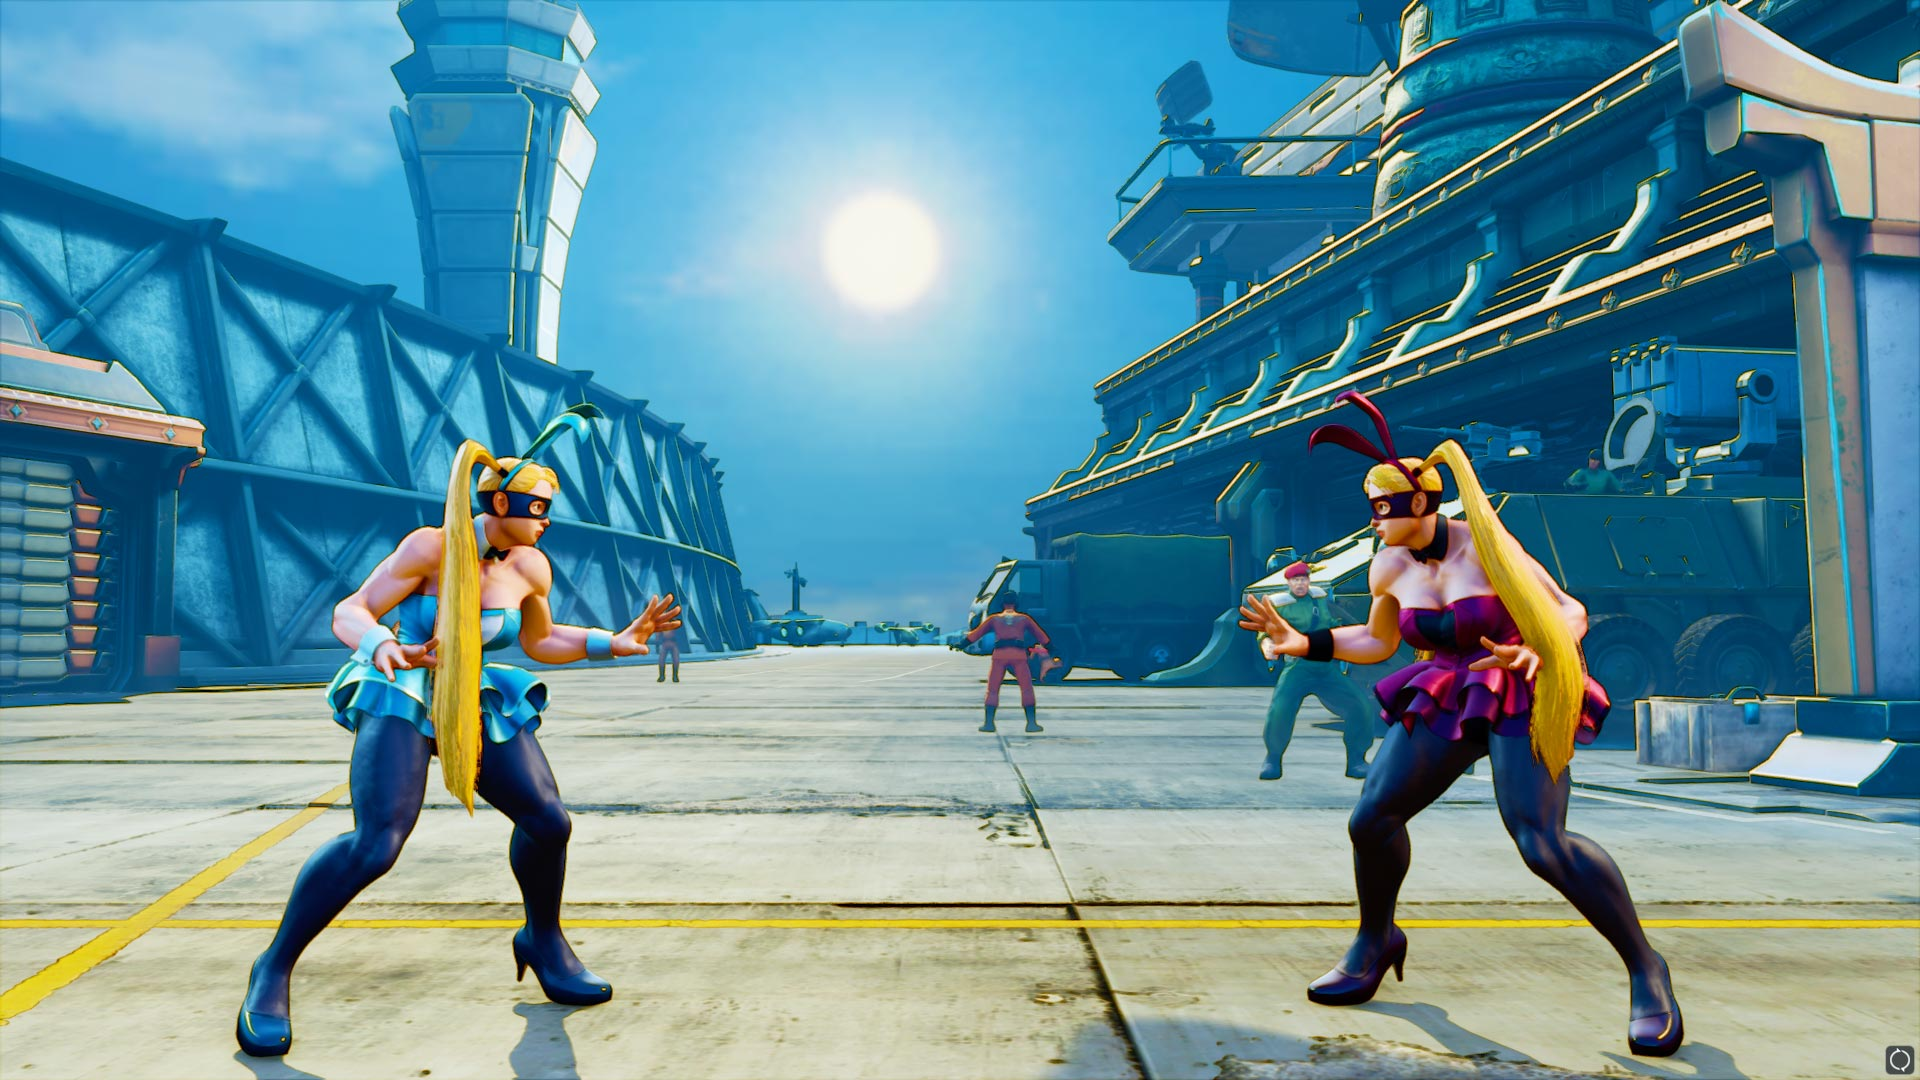 Professional costume colors for Street Fighter 5 17 out of 21 image gallery